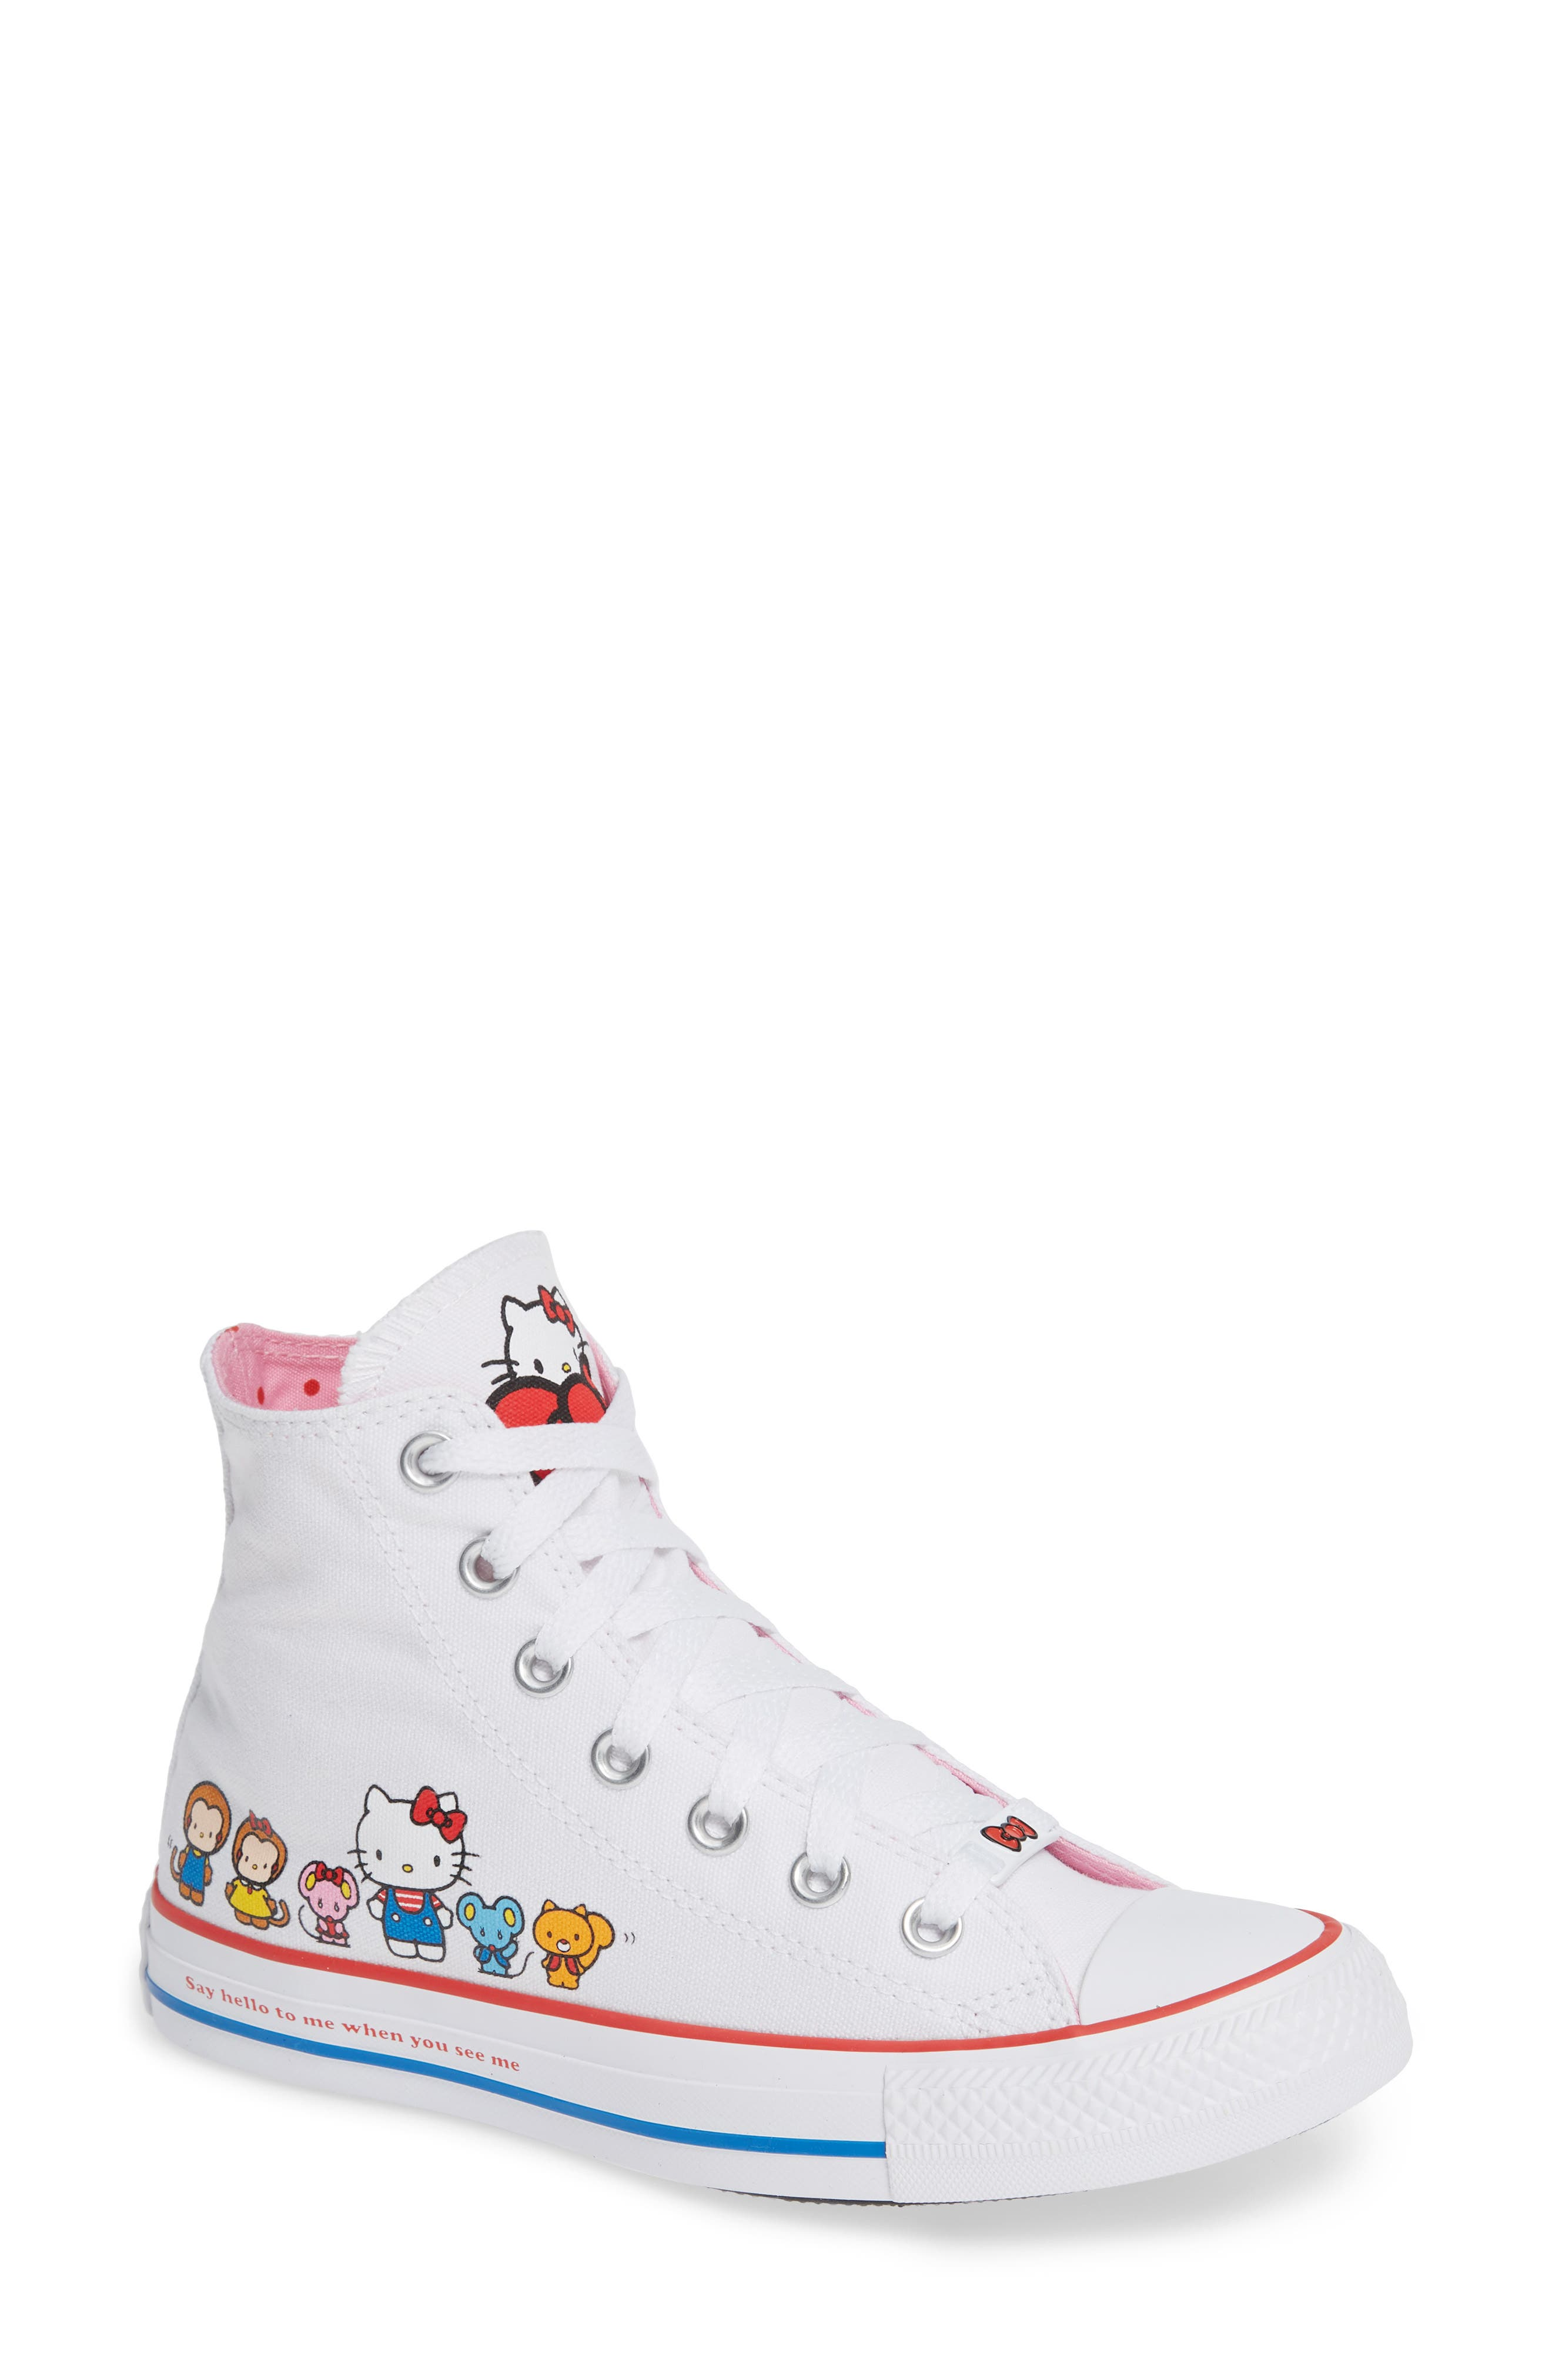 Chuck Taylor<sup>®</sup> All Star<sup>®</sup> Hello Kitty High Top Sneaker, Main, color, 102